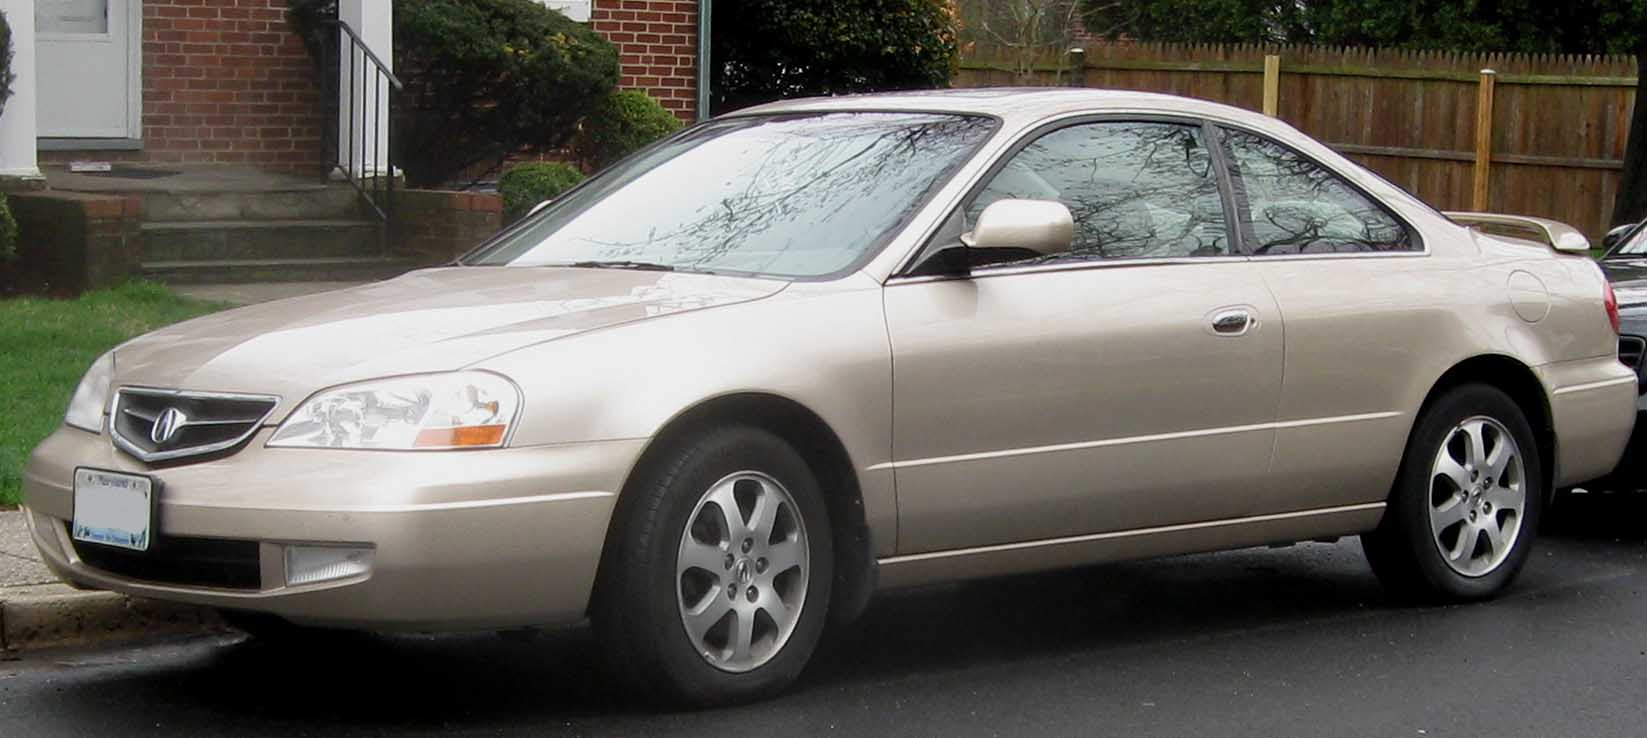 Nd Acura Cl